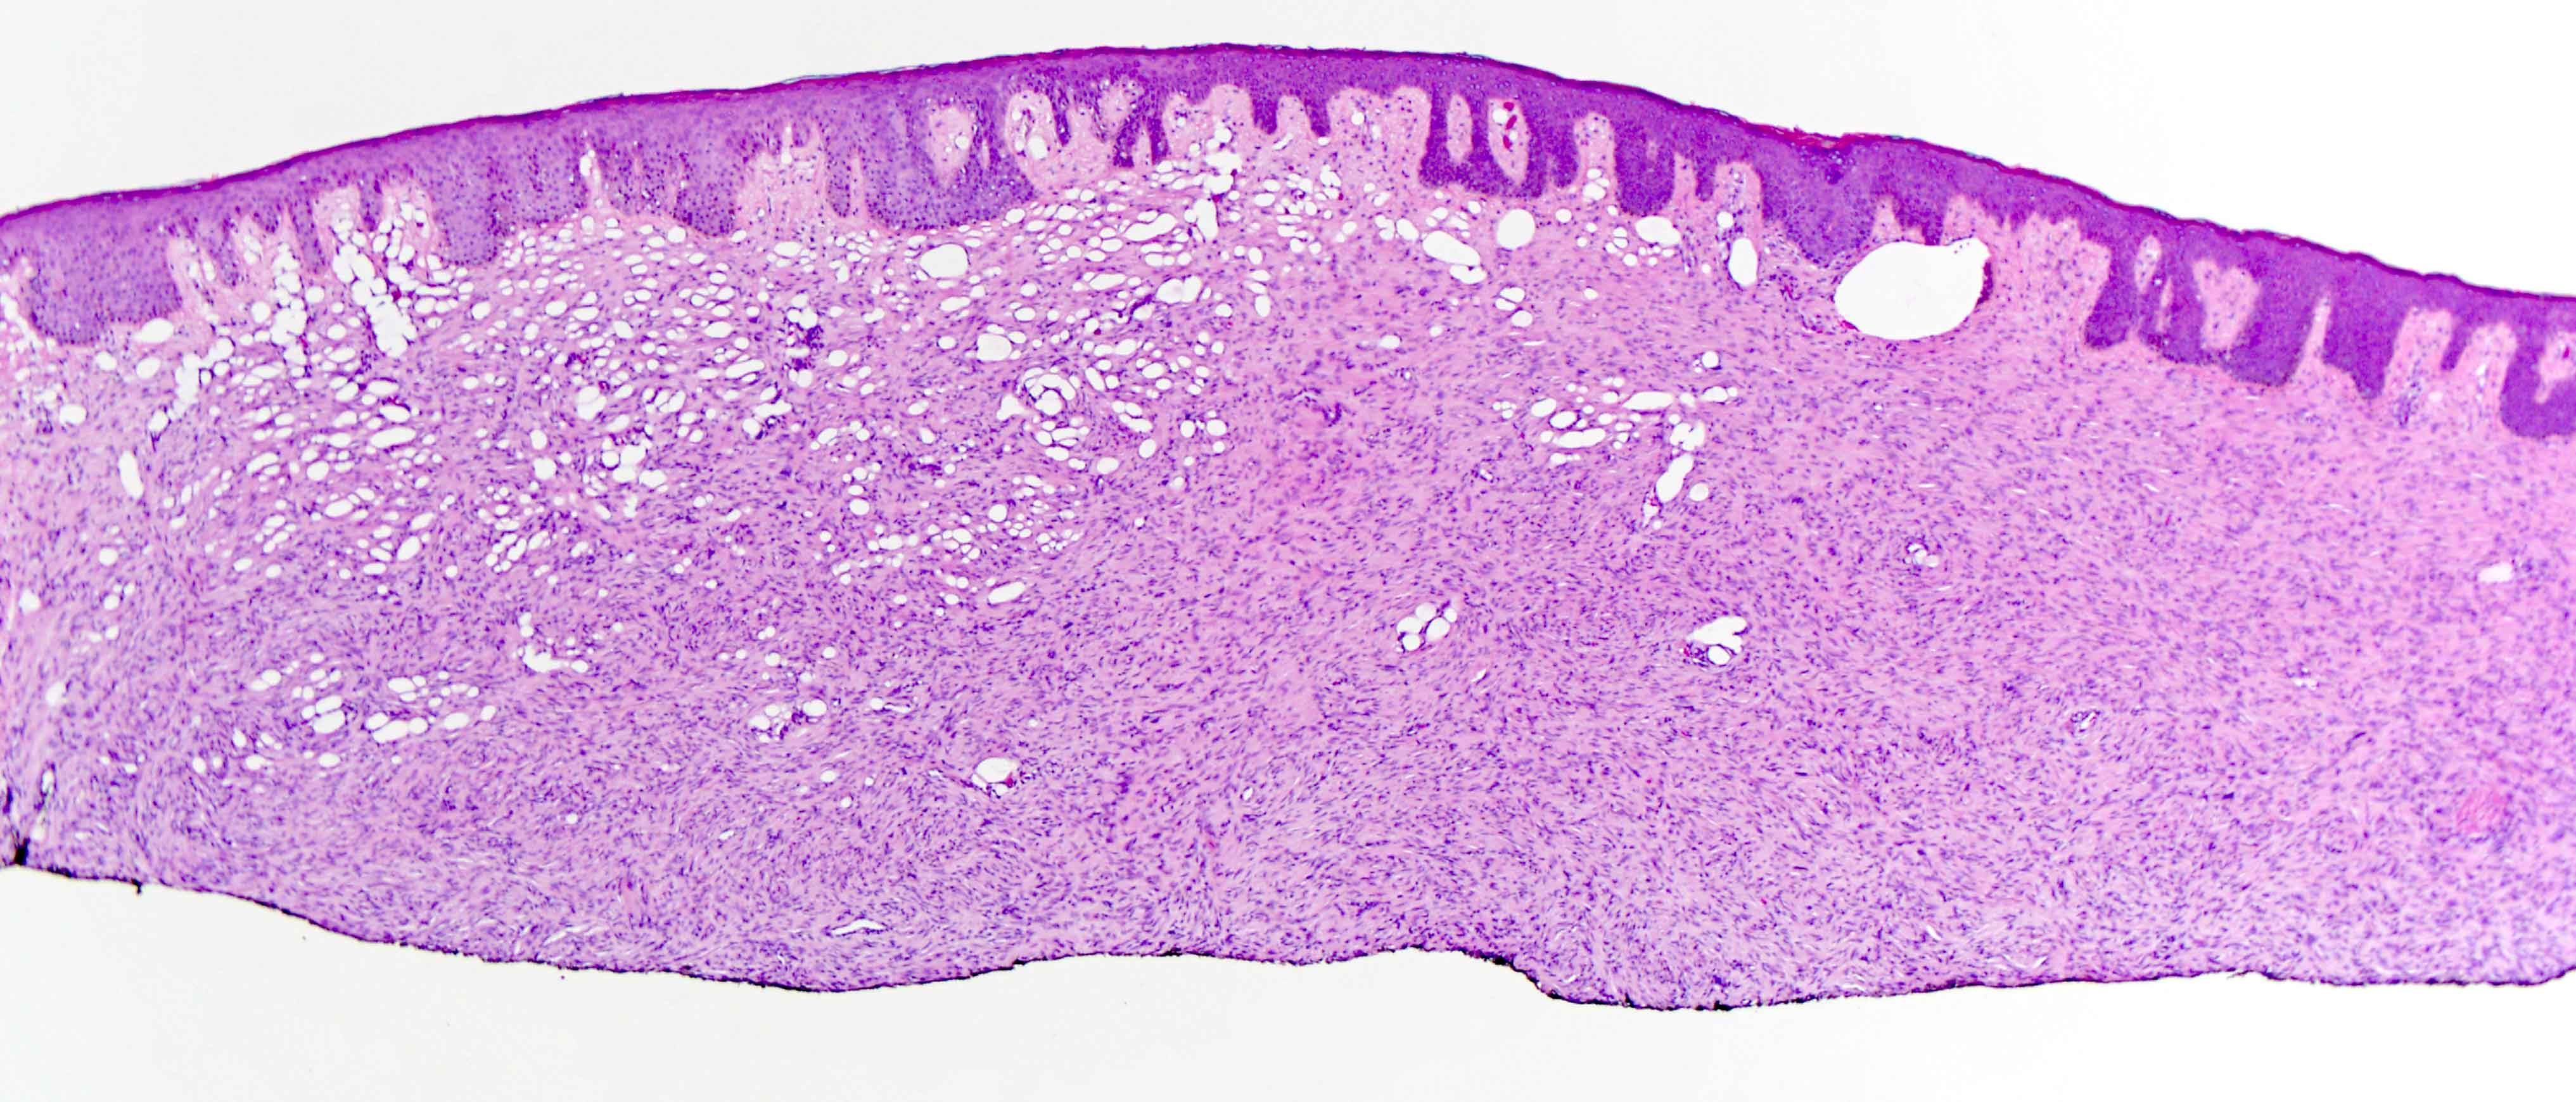 Slide 2: The spindled cell neoplasm is manifesting a storiform growth pattern along with entrapment of adipocytes resembling a honeycomb architecture.